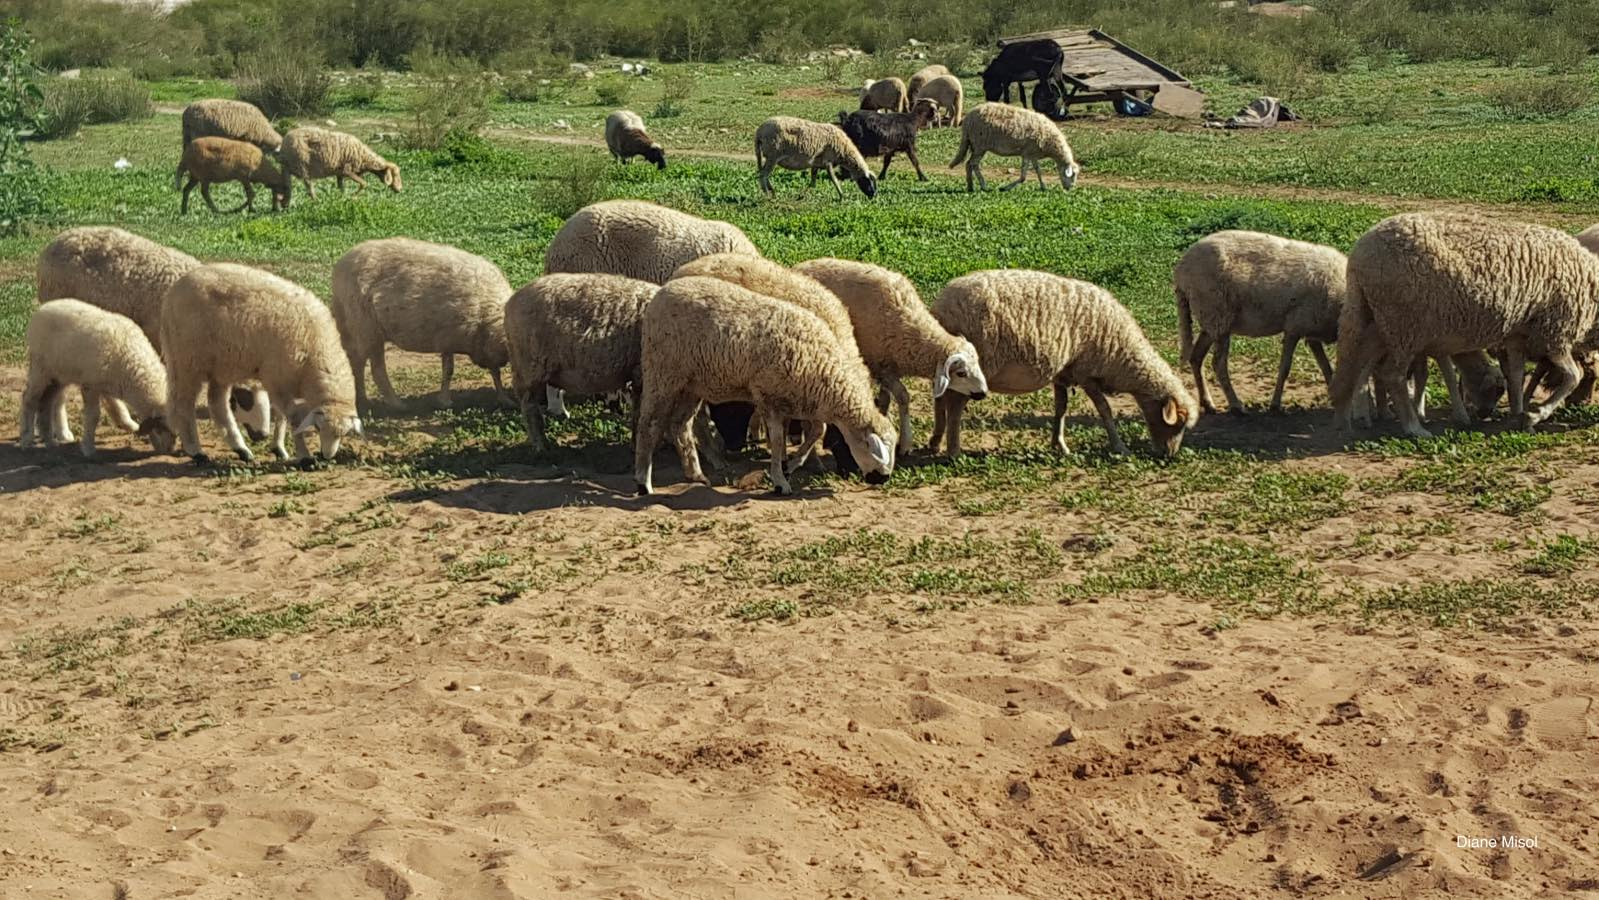 Sheep grazing in the Moroccon Countryside